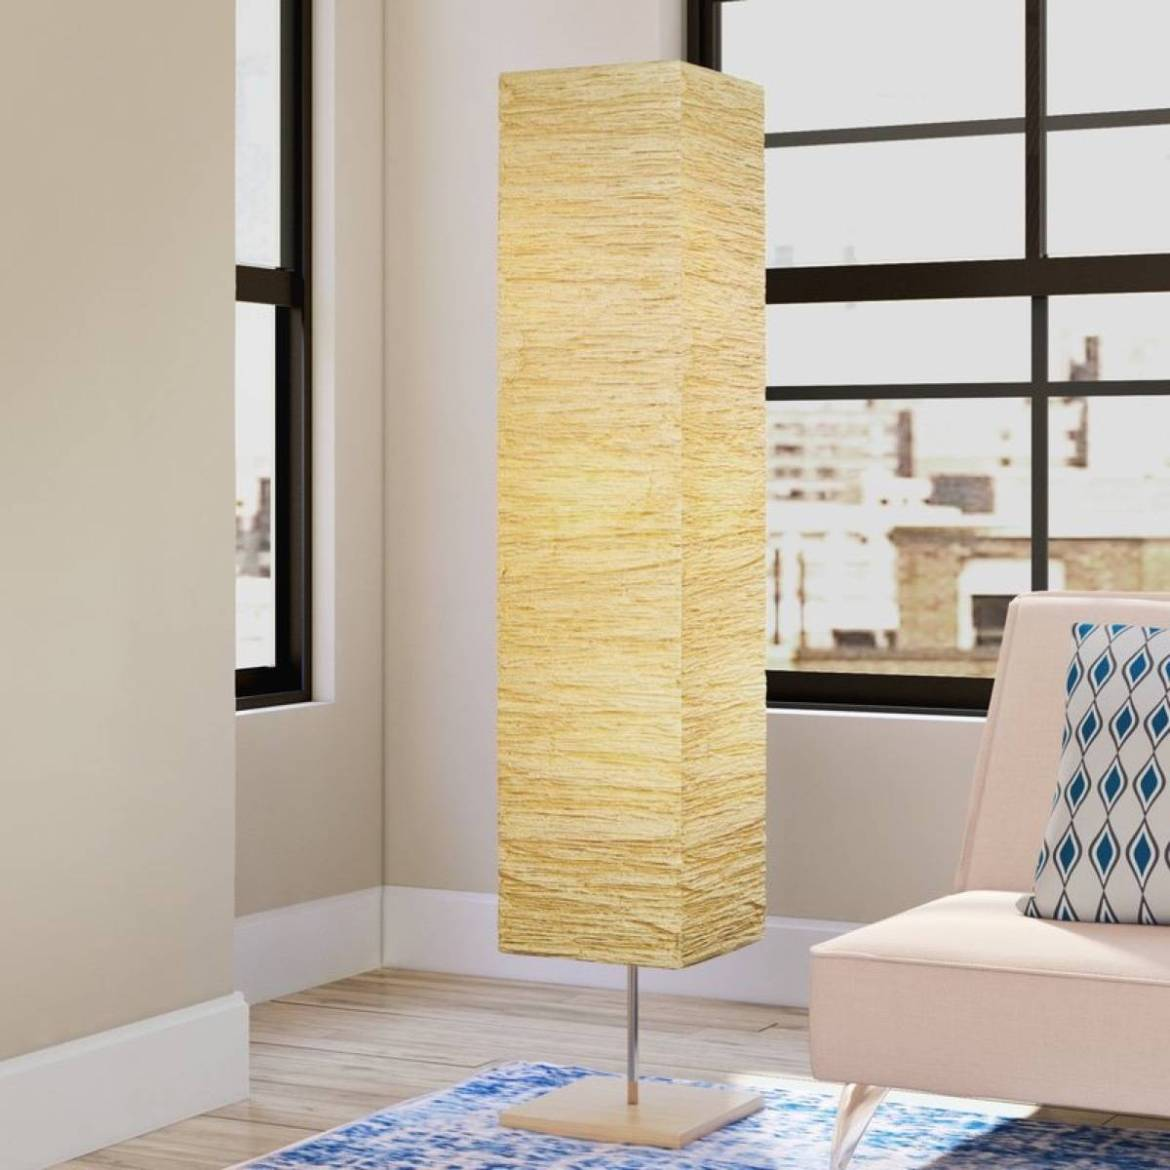 Toombs column floor lamp from All Modern